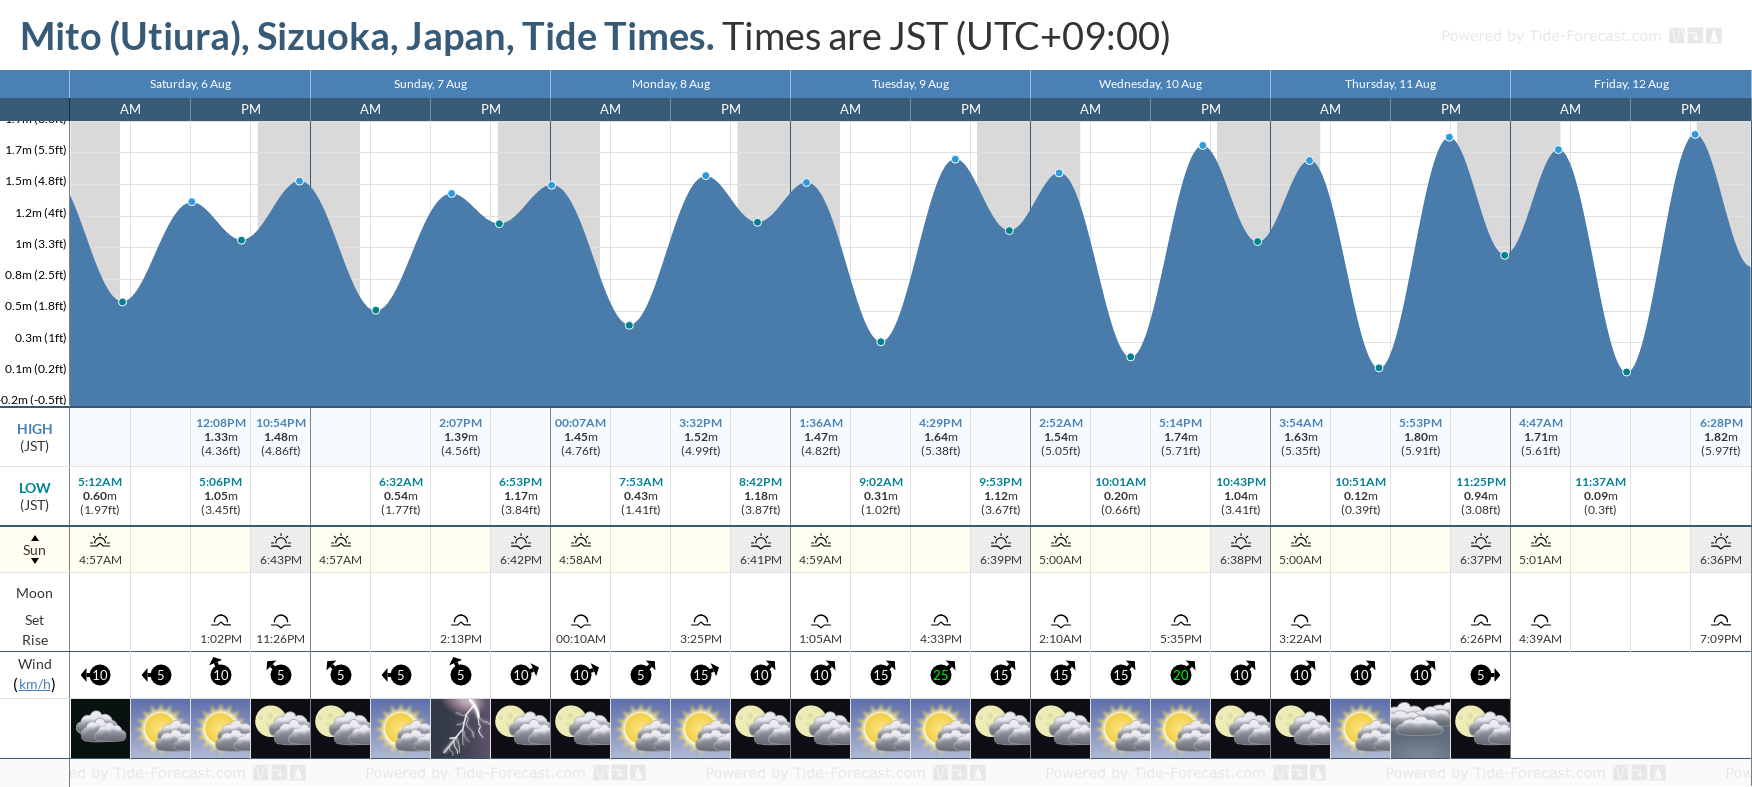 Mito (Utiura), Sizuoka, Japan Tide Chart including high and low tide tide times for the next 7 days